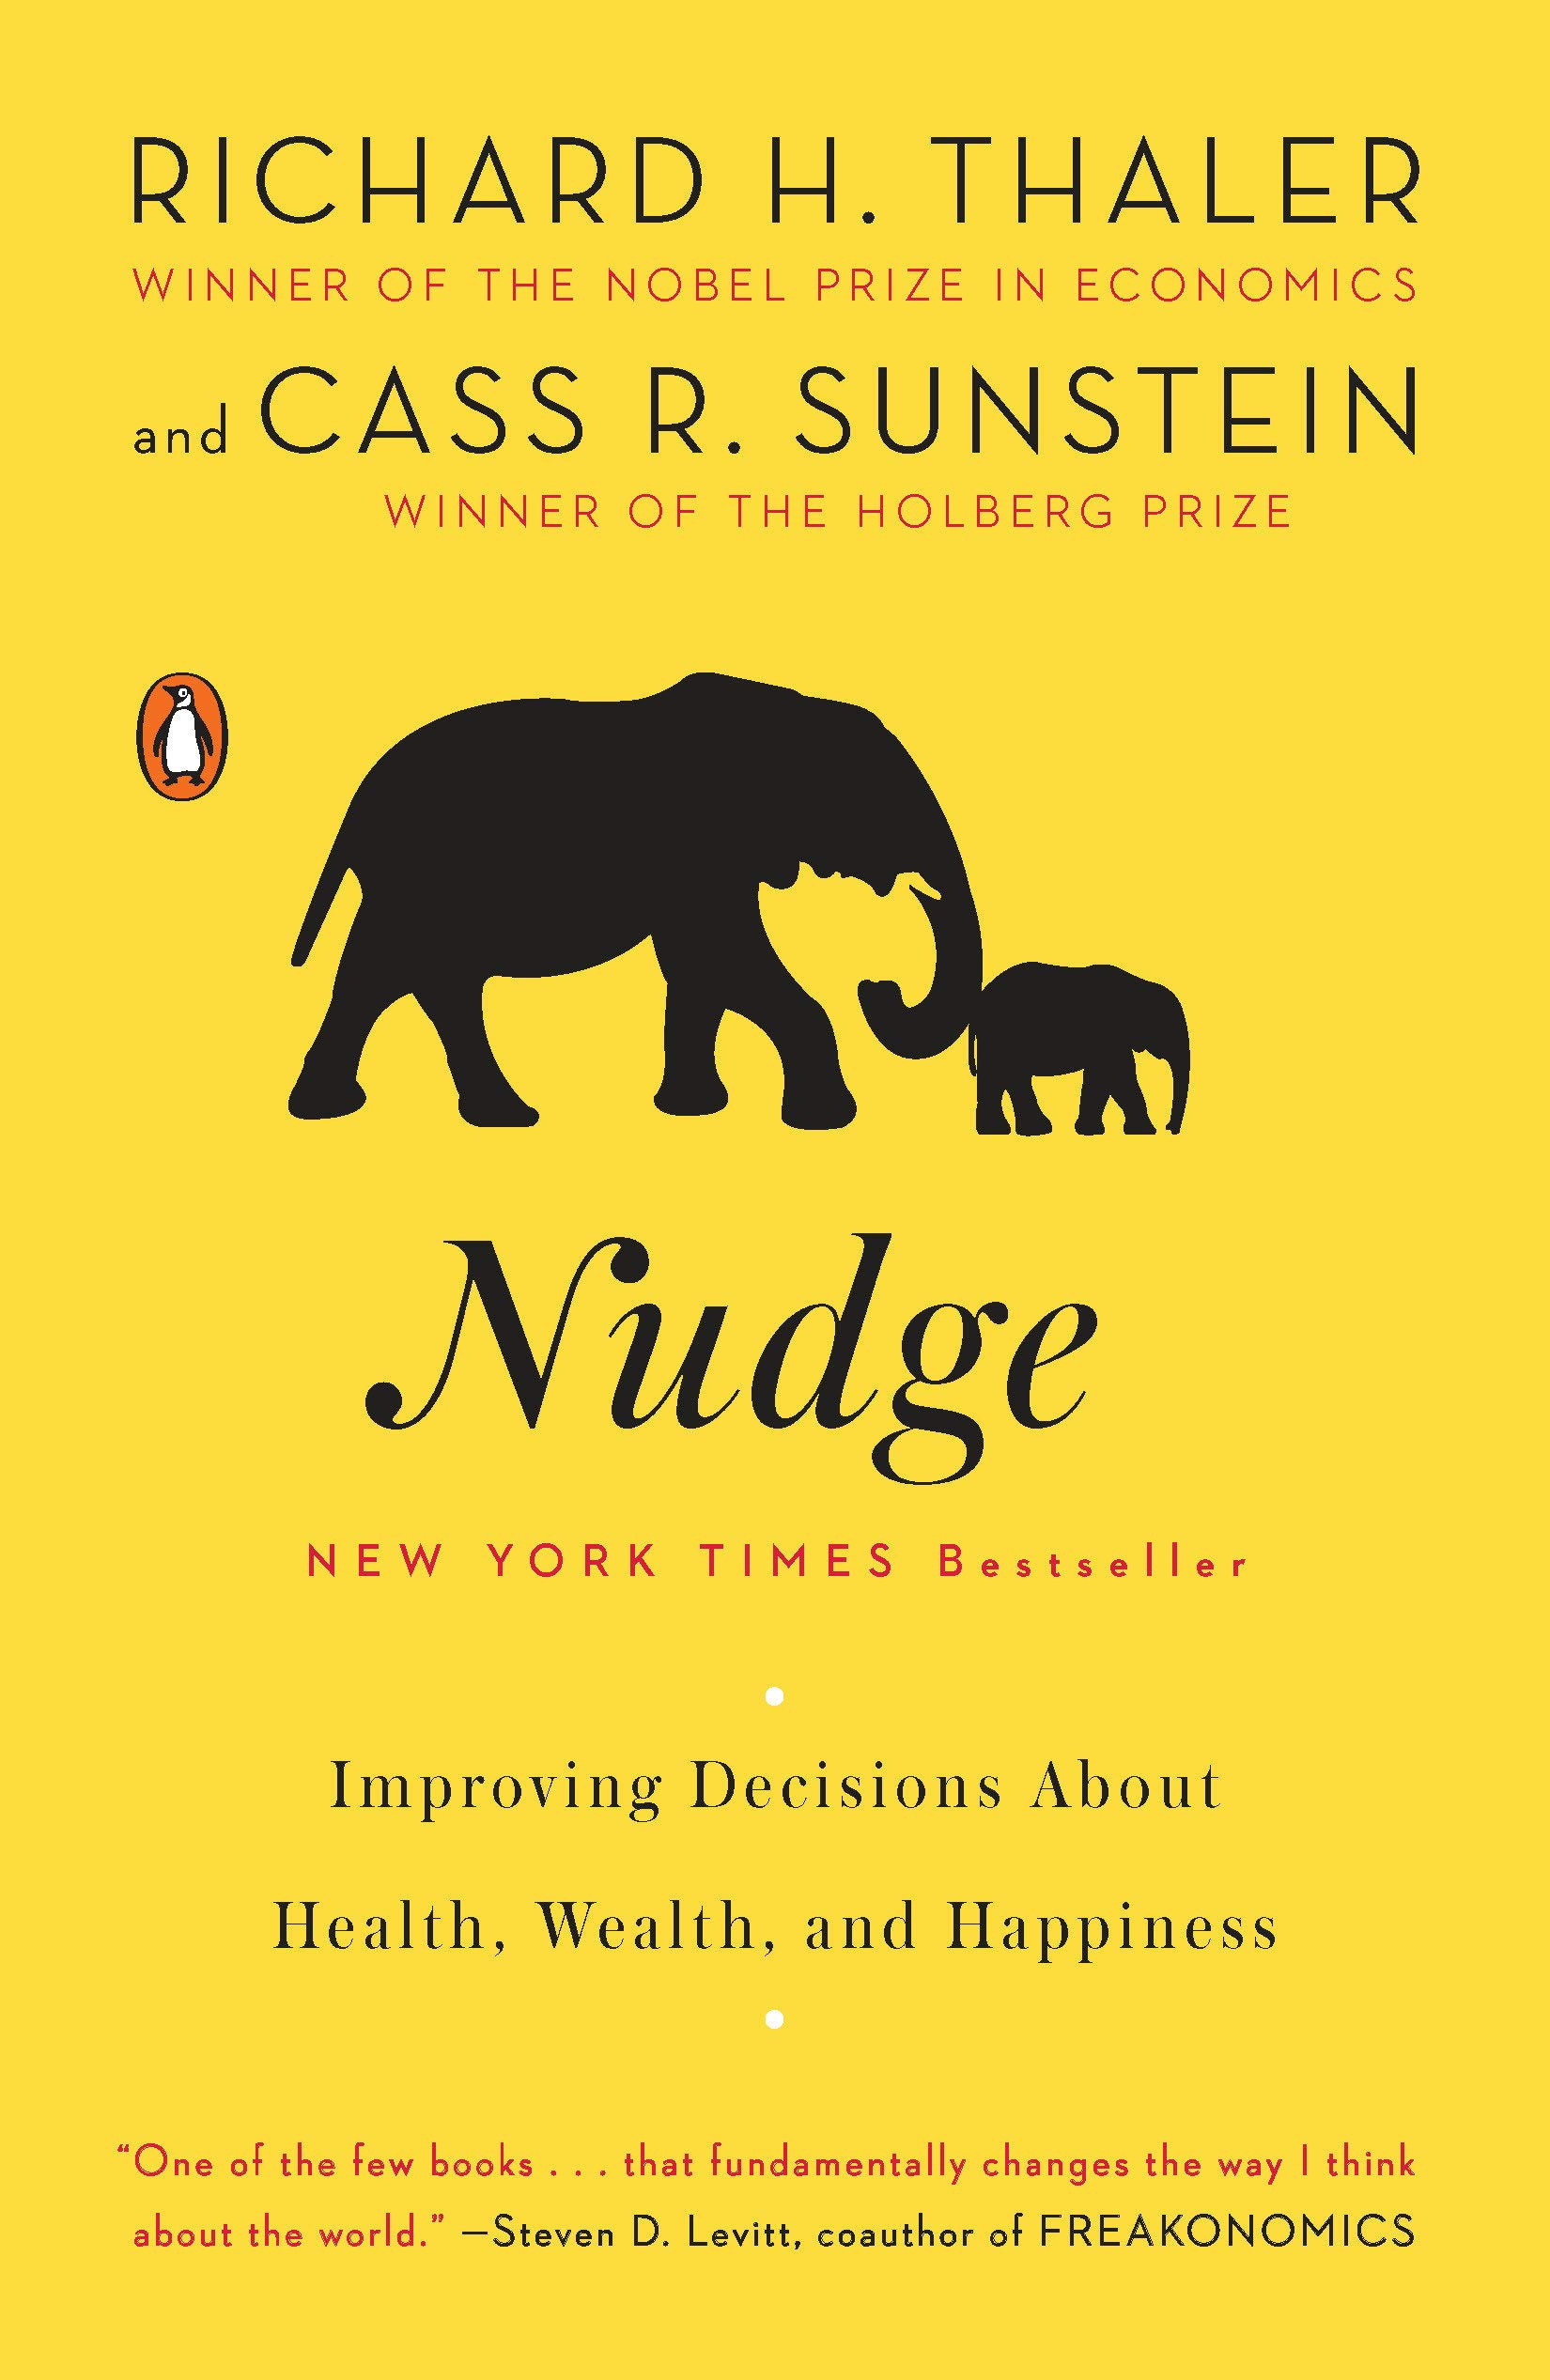 Nudge (Richard H Thaler & Cass R Sunstein)